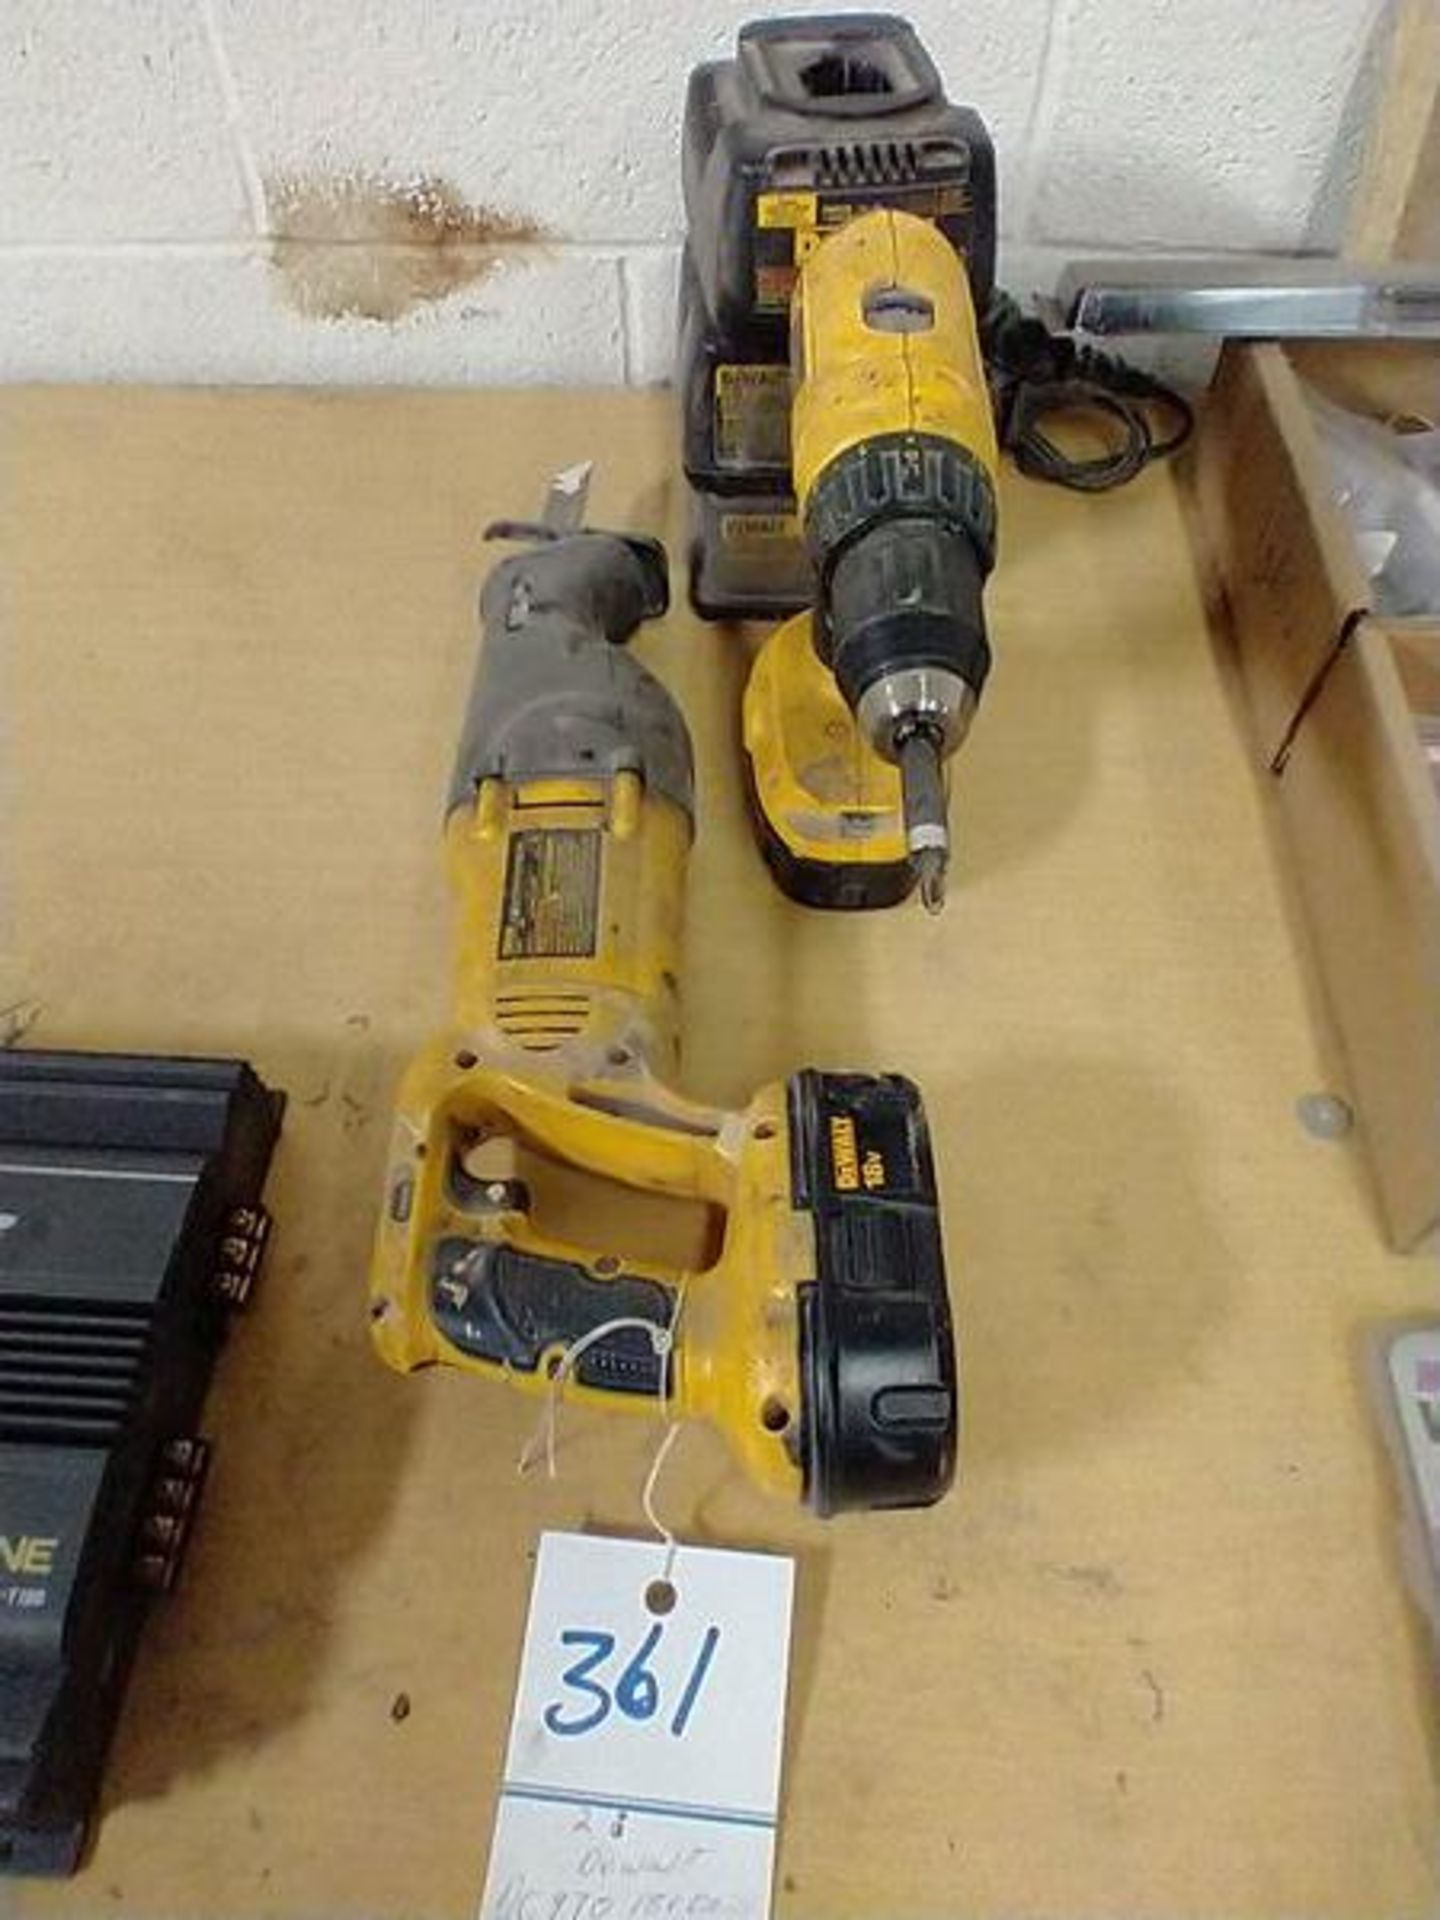 DEWALT DC970 18V DRILL AND DW938 18V RECIPROCATING SAW WITH CHARGER